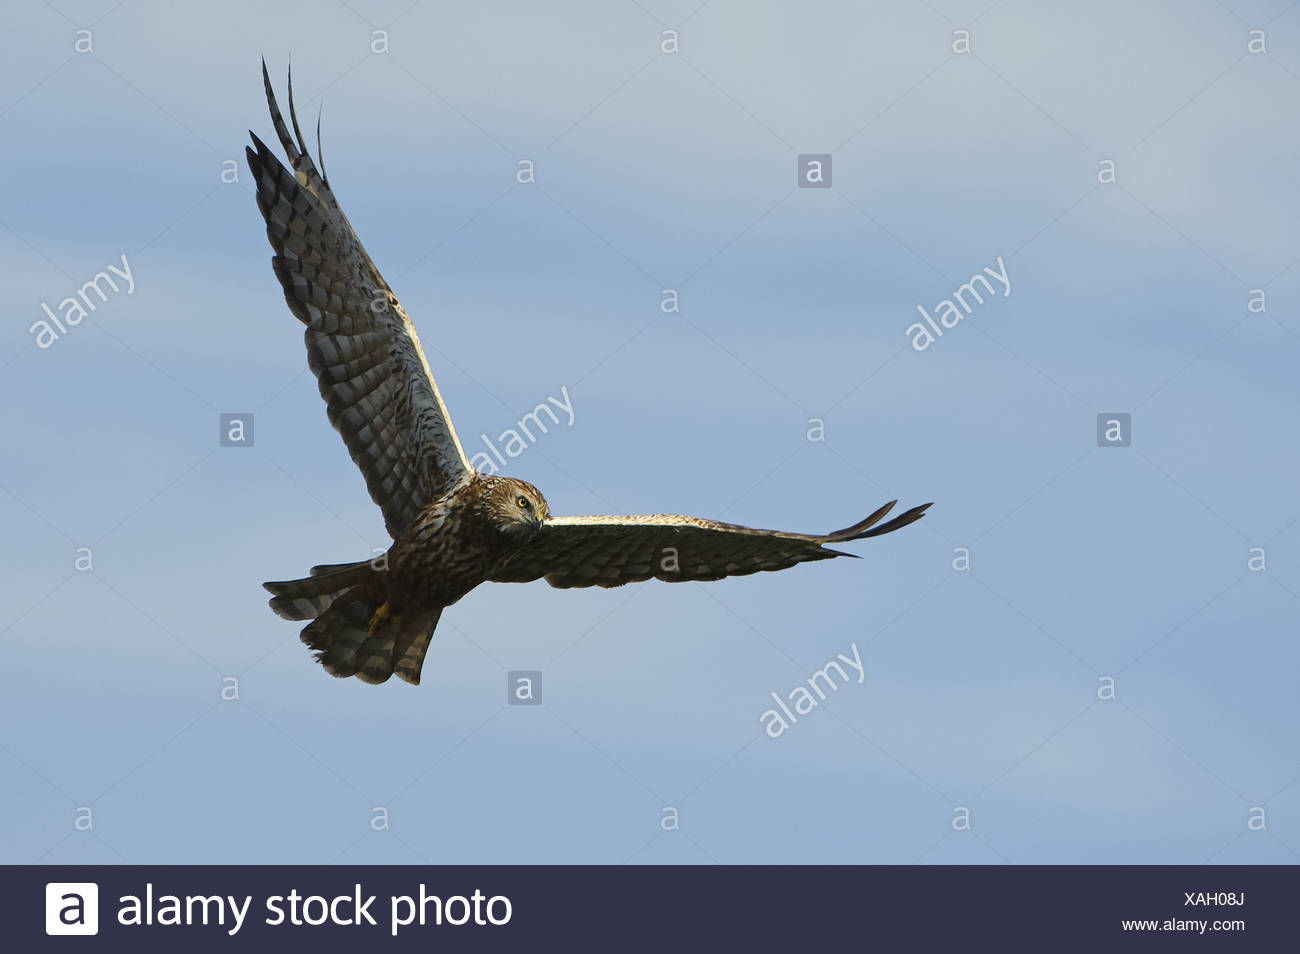 African Marsh Harrier (Circus ranivorus) adult, in flight, Godikwe, Okavango Delta, Botswana Stock Photo